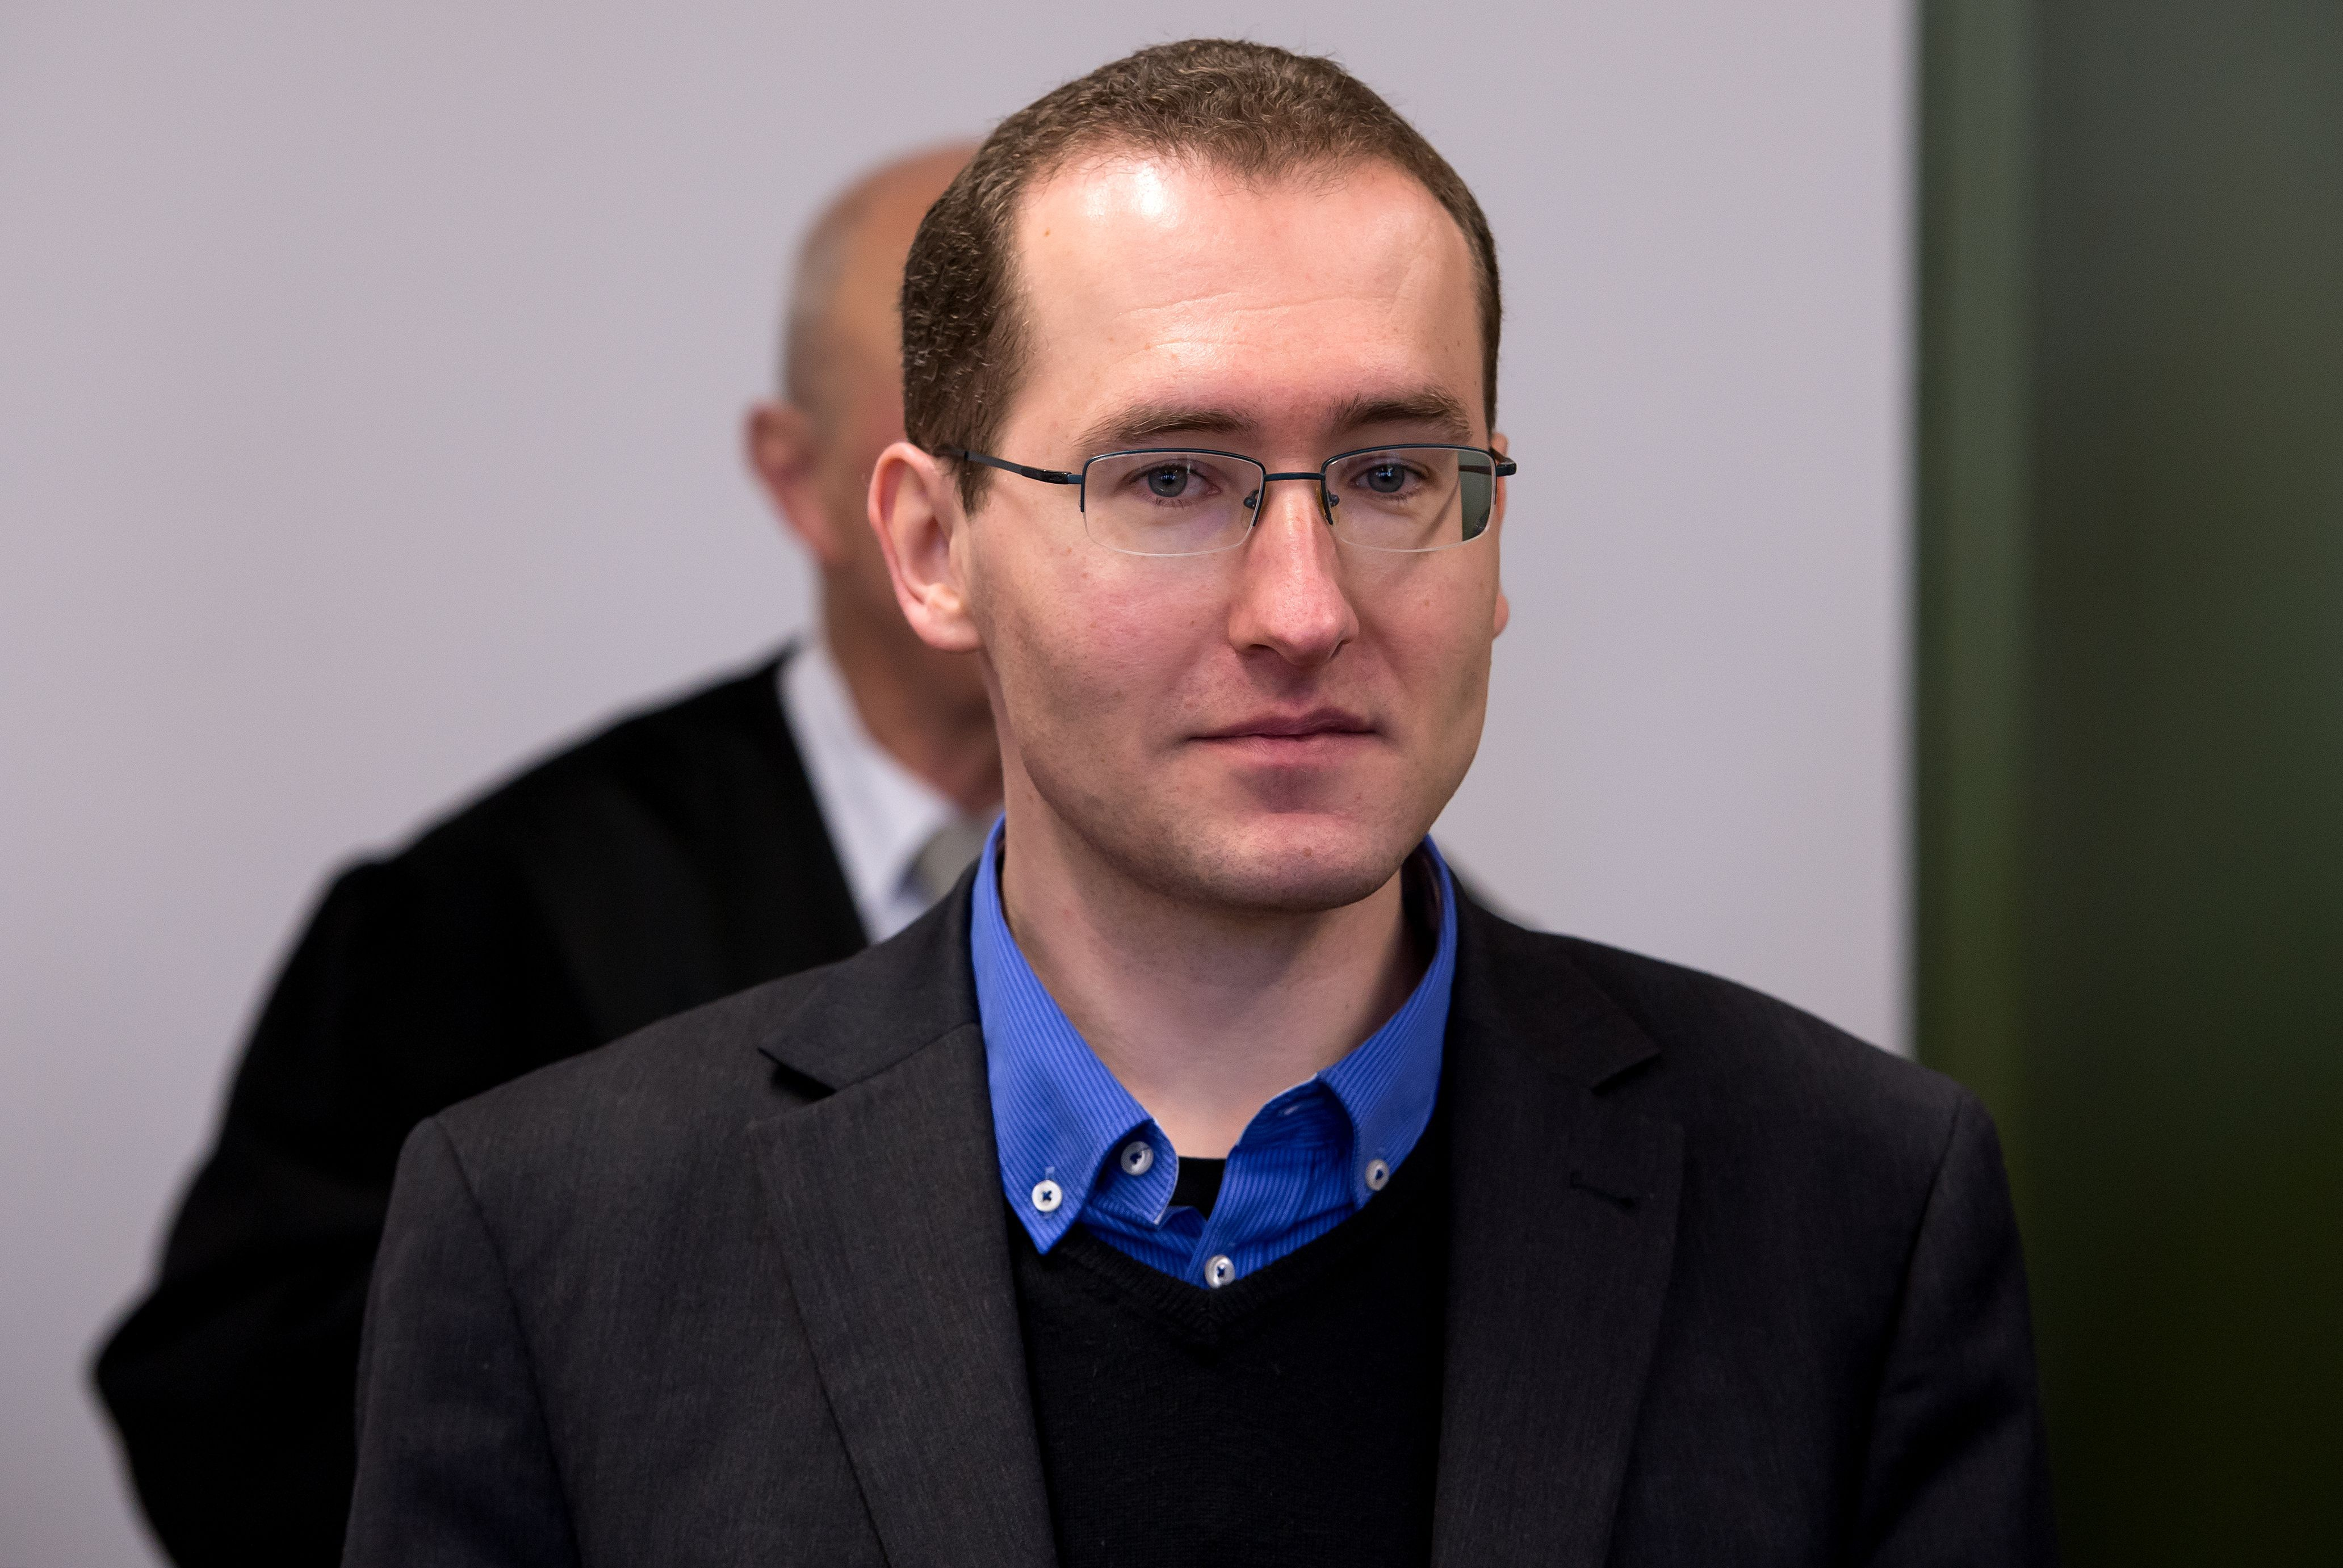 Markus Reichel, a former employee of Germany's Federal Intelligence Service, arrives for his trial at the higher regional court in Munich on March 17, 2016